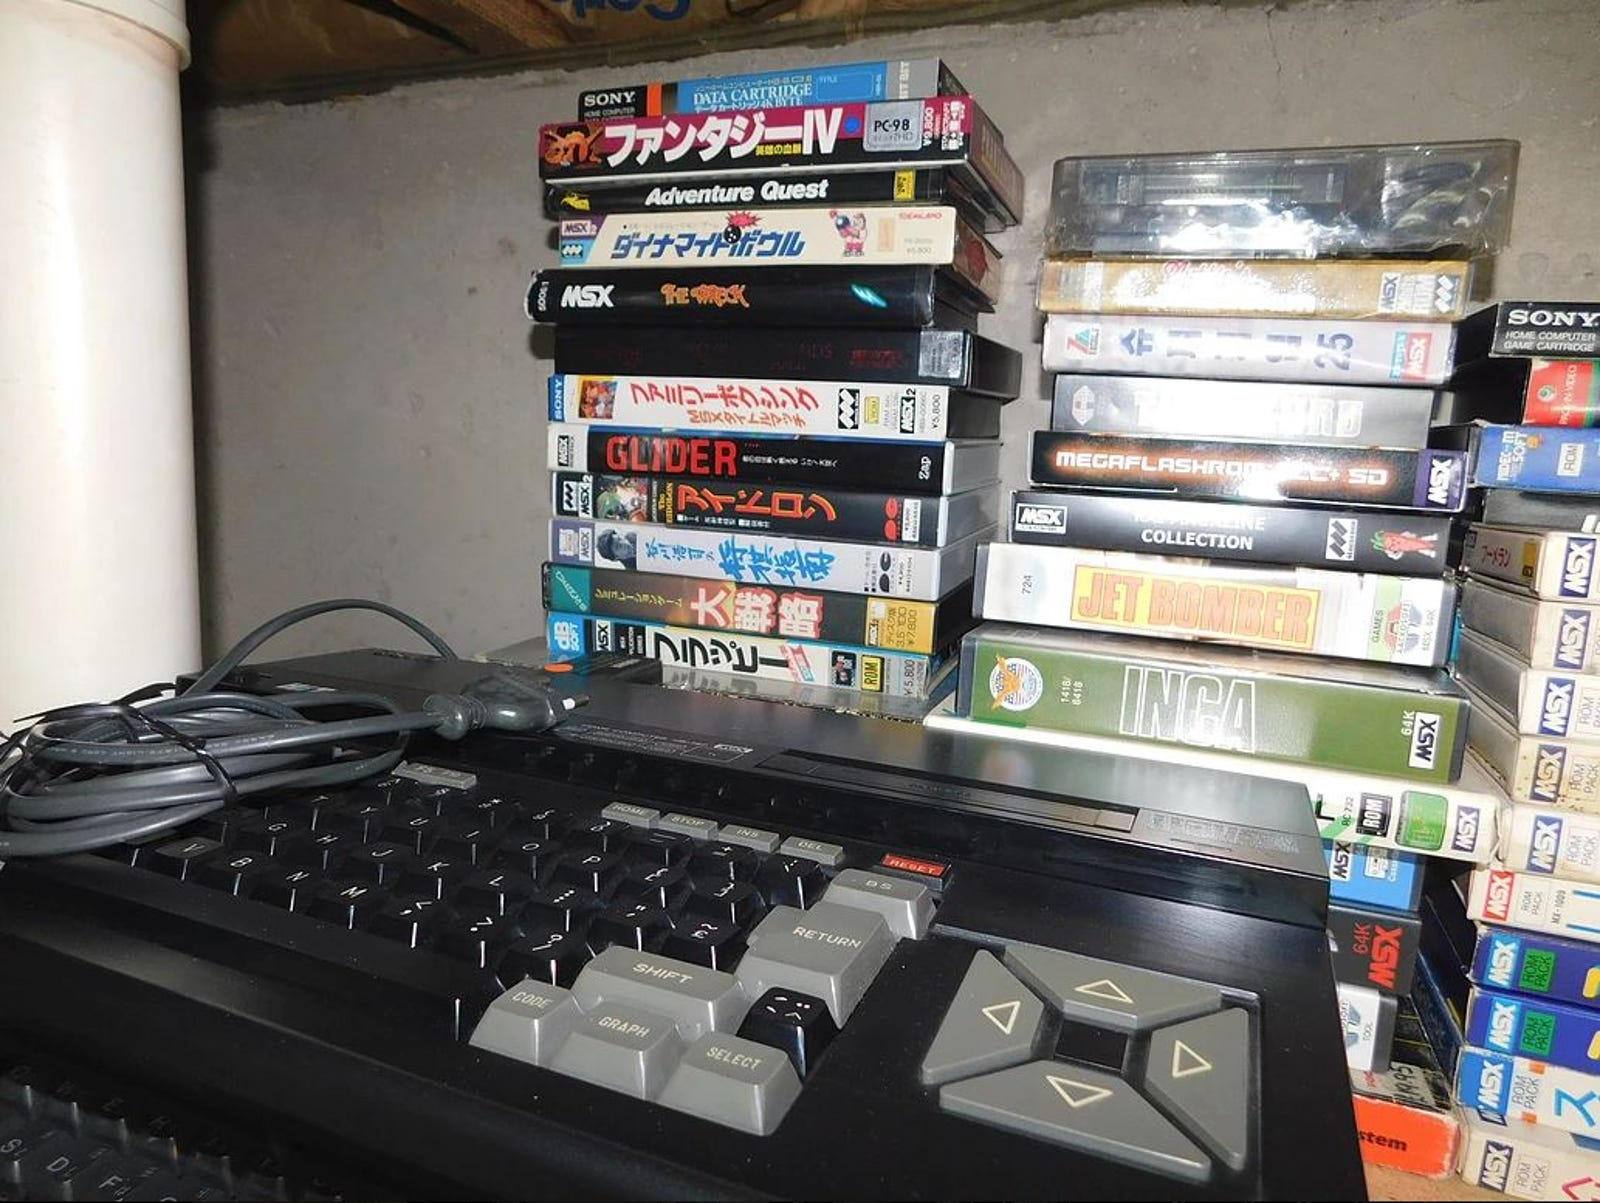 Multiple MSX computers from Japan, and piles of software.